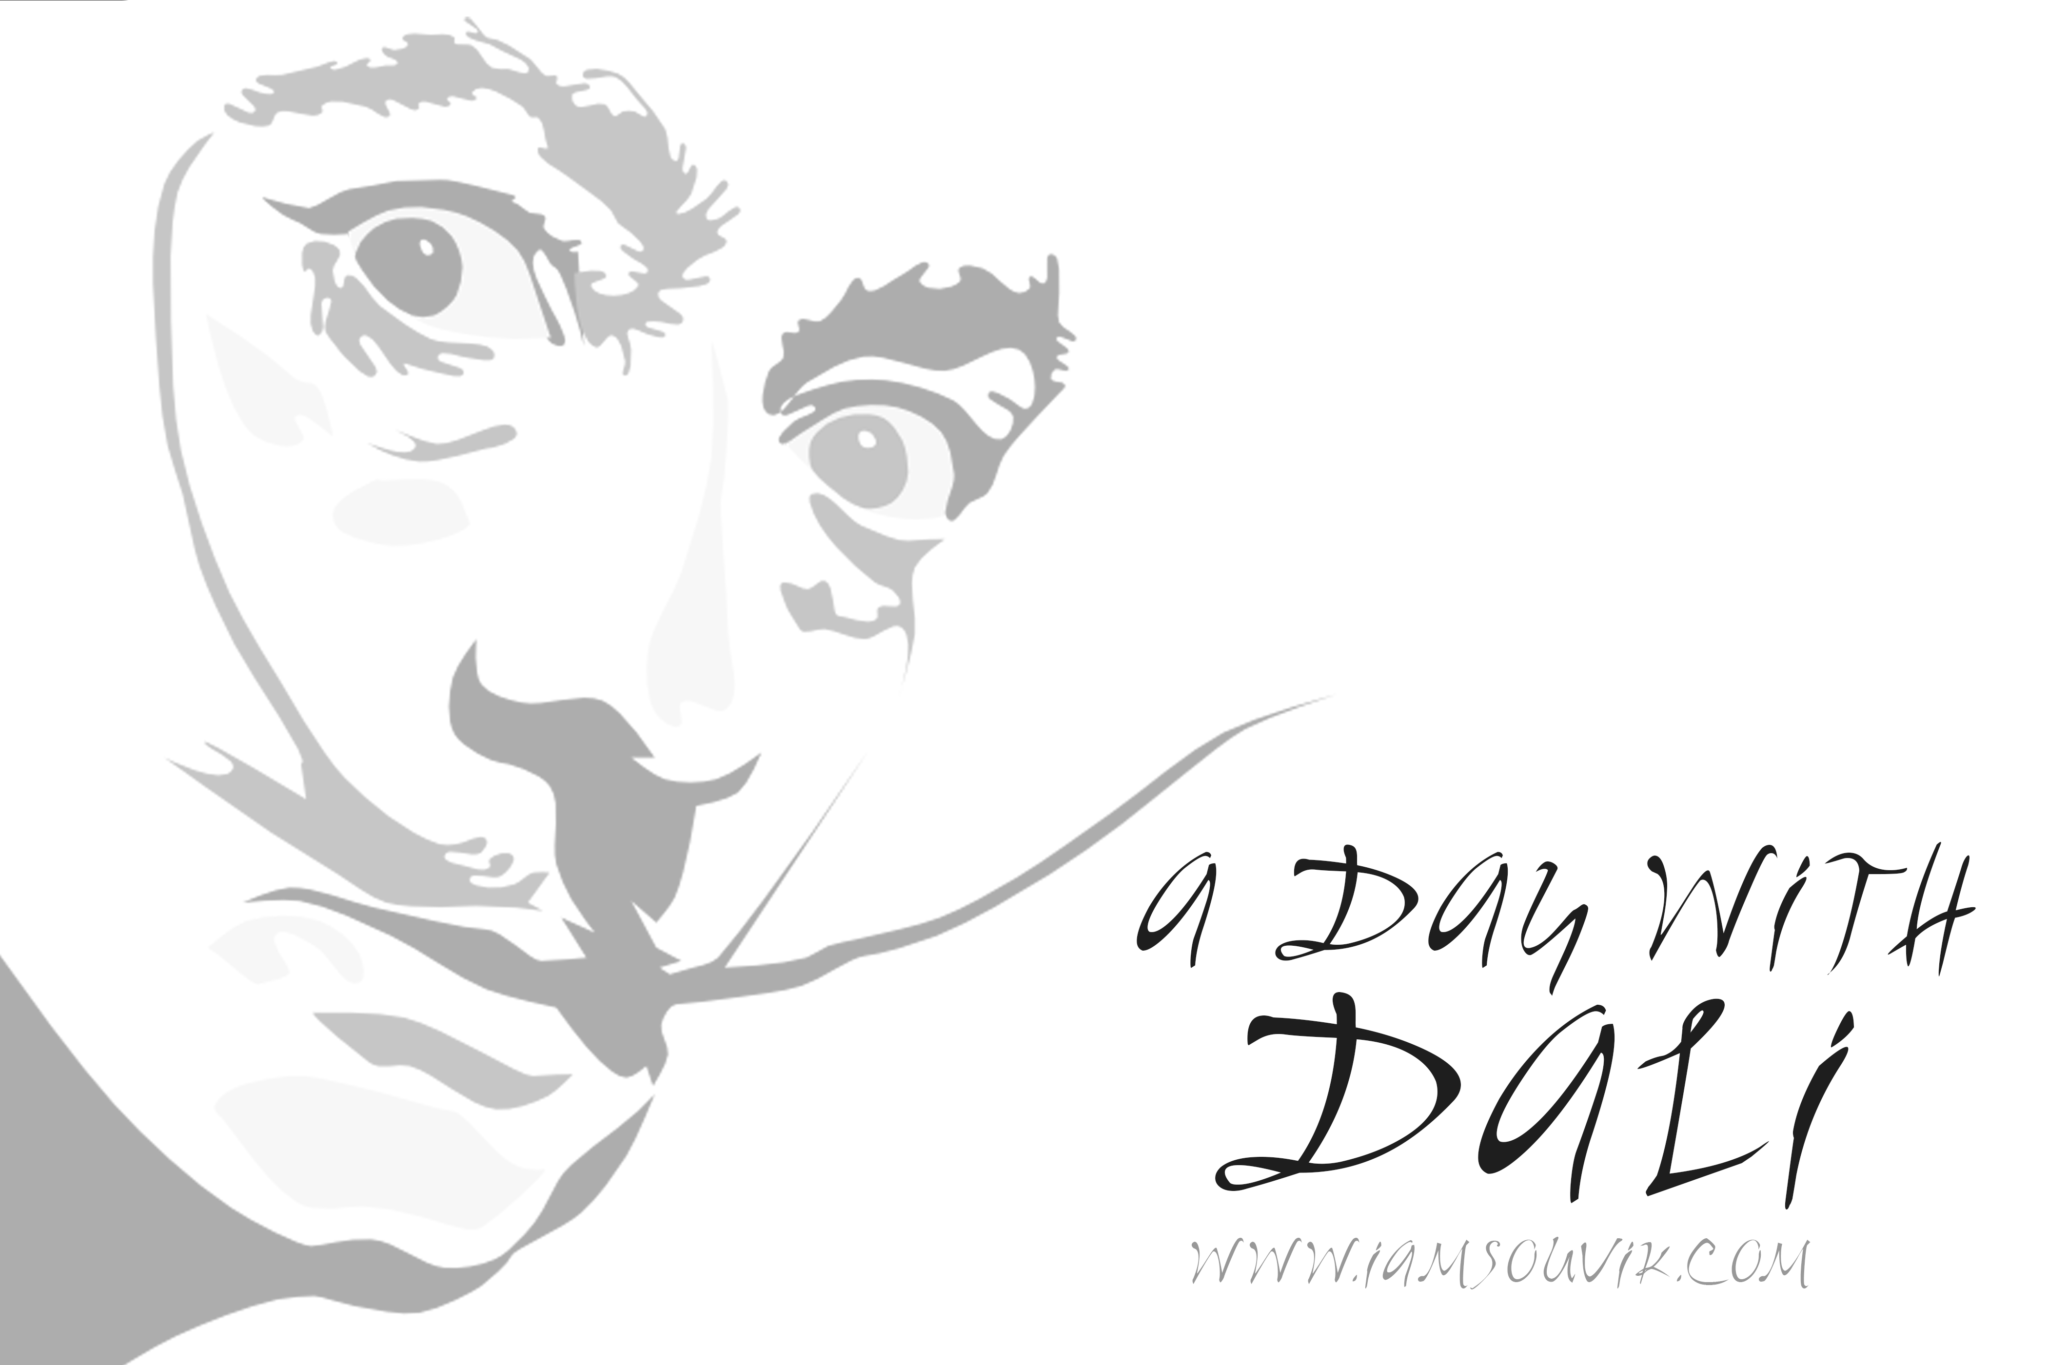 A Day with Dali